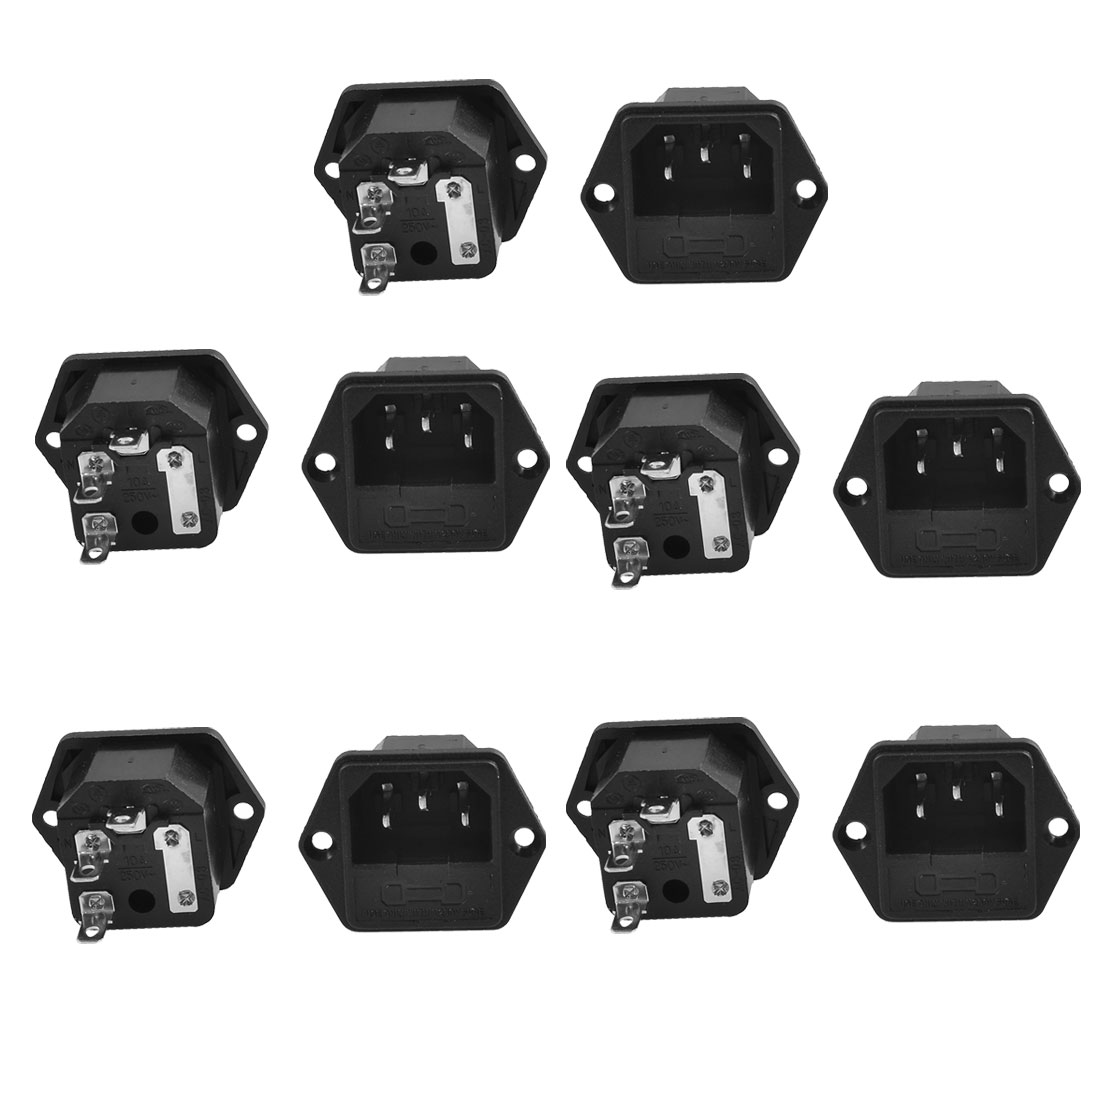 10 Pcs Fuse Holder IEC 320 C14 Inlet AC Power Entry Socket 10A 250V